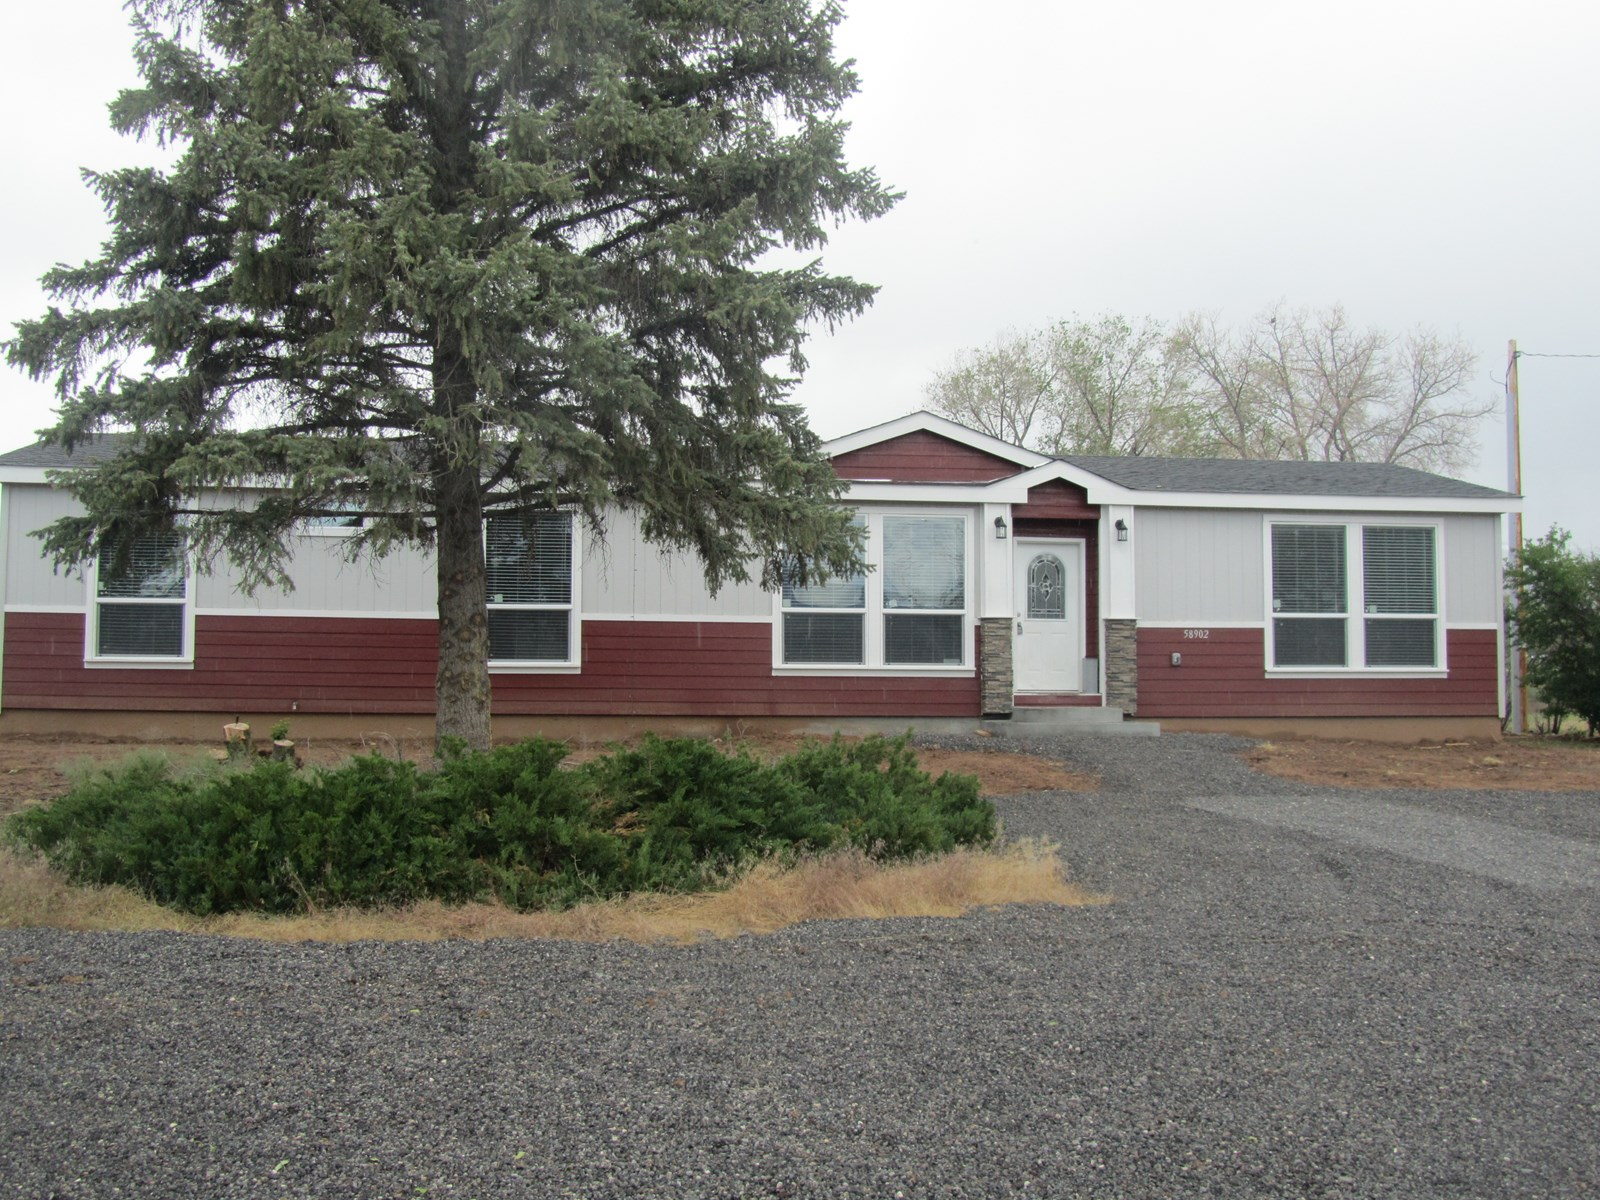 Home With Views For Sale in Collbran, CO on a Half Acre Lot